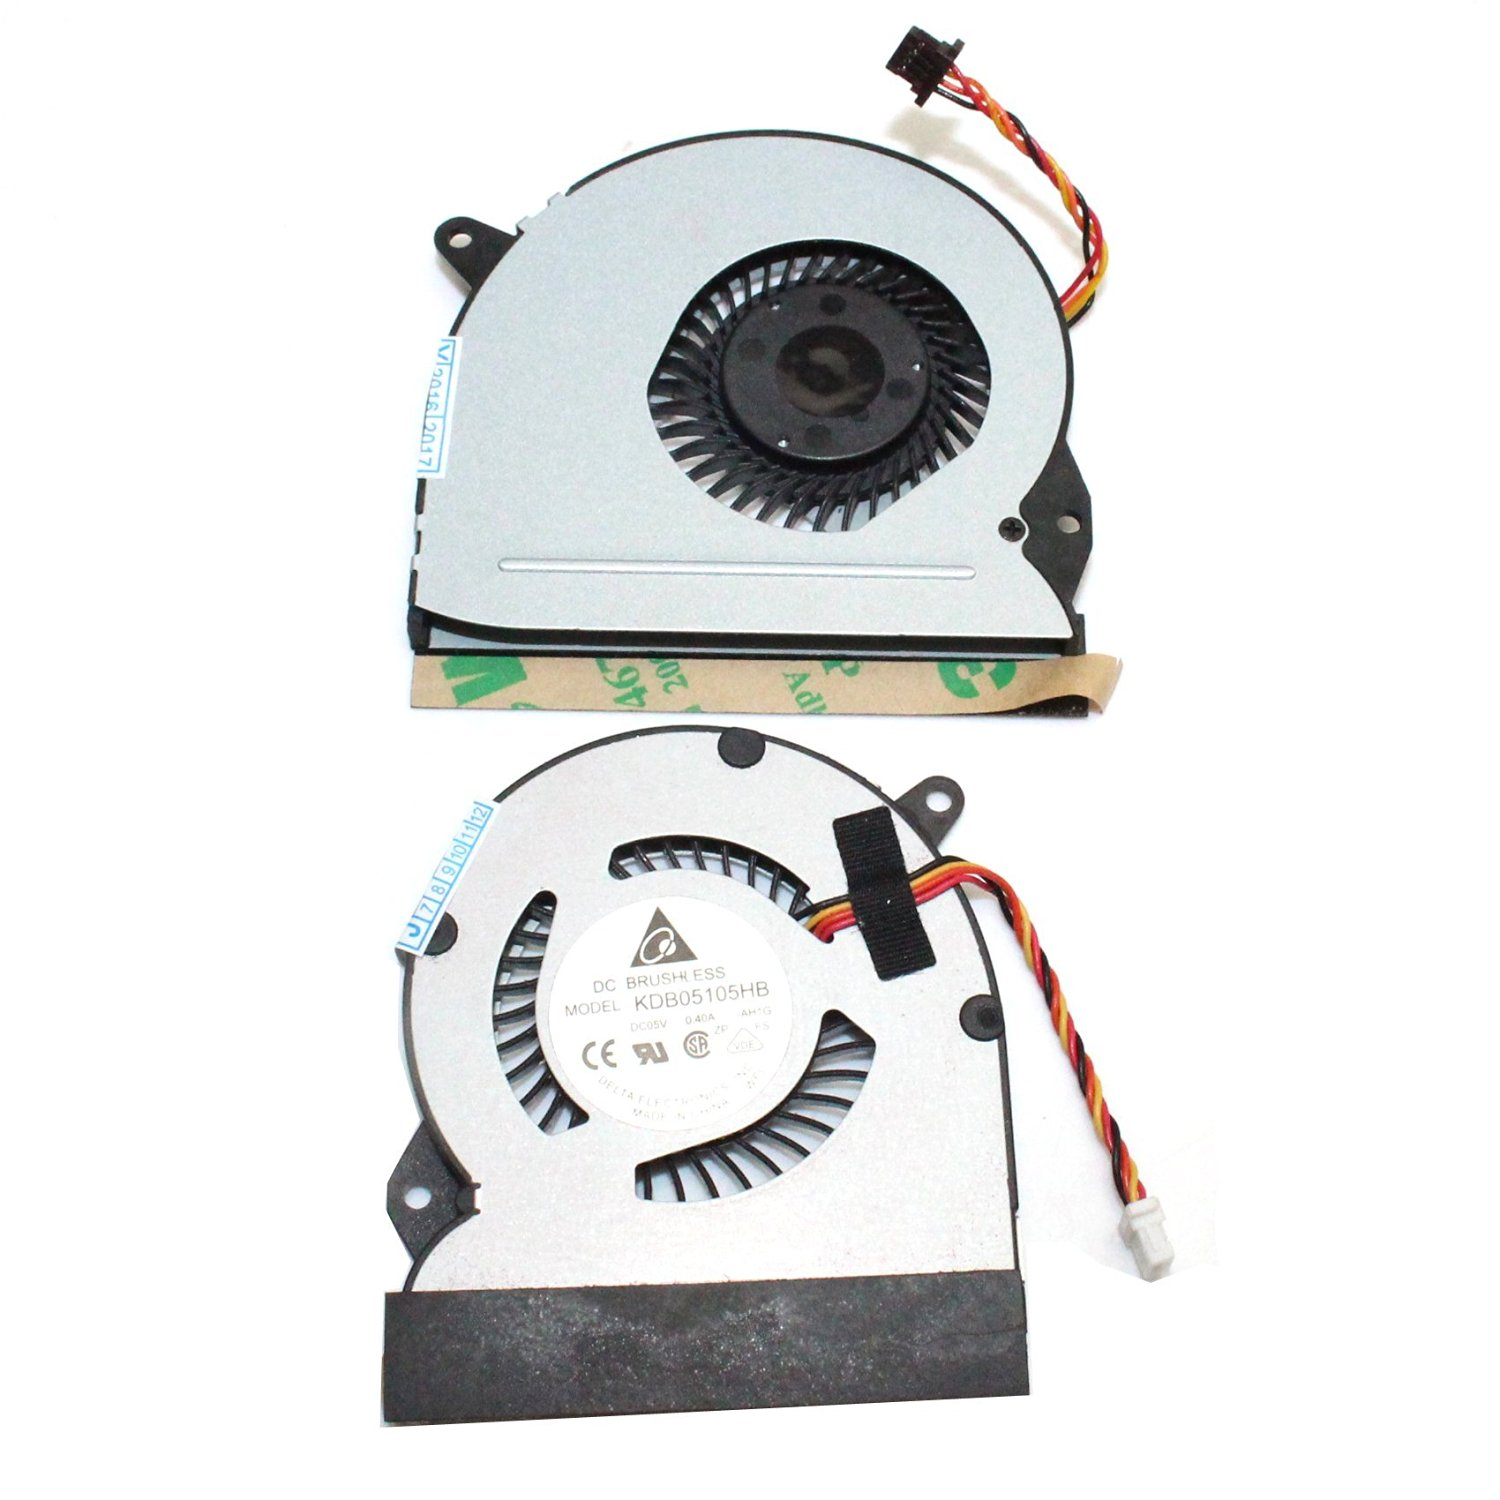 Generic New Laptop CPU Cooling Fan L + R For ASUS Eee Pad Slate EP121 B121 B121-1A031F Series Replacement Parts